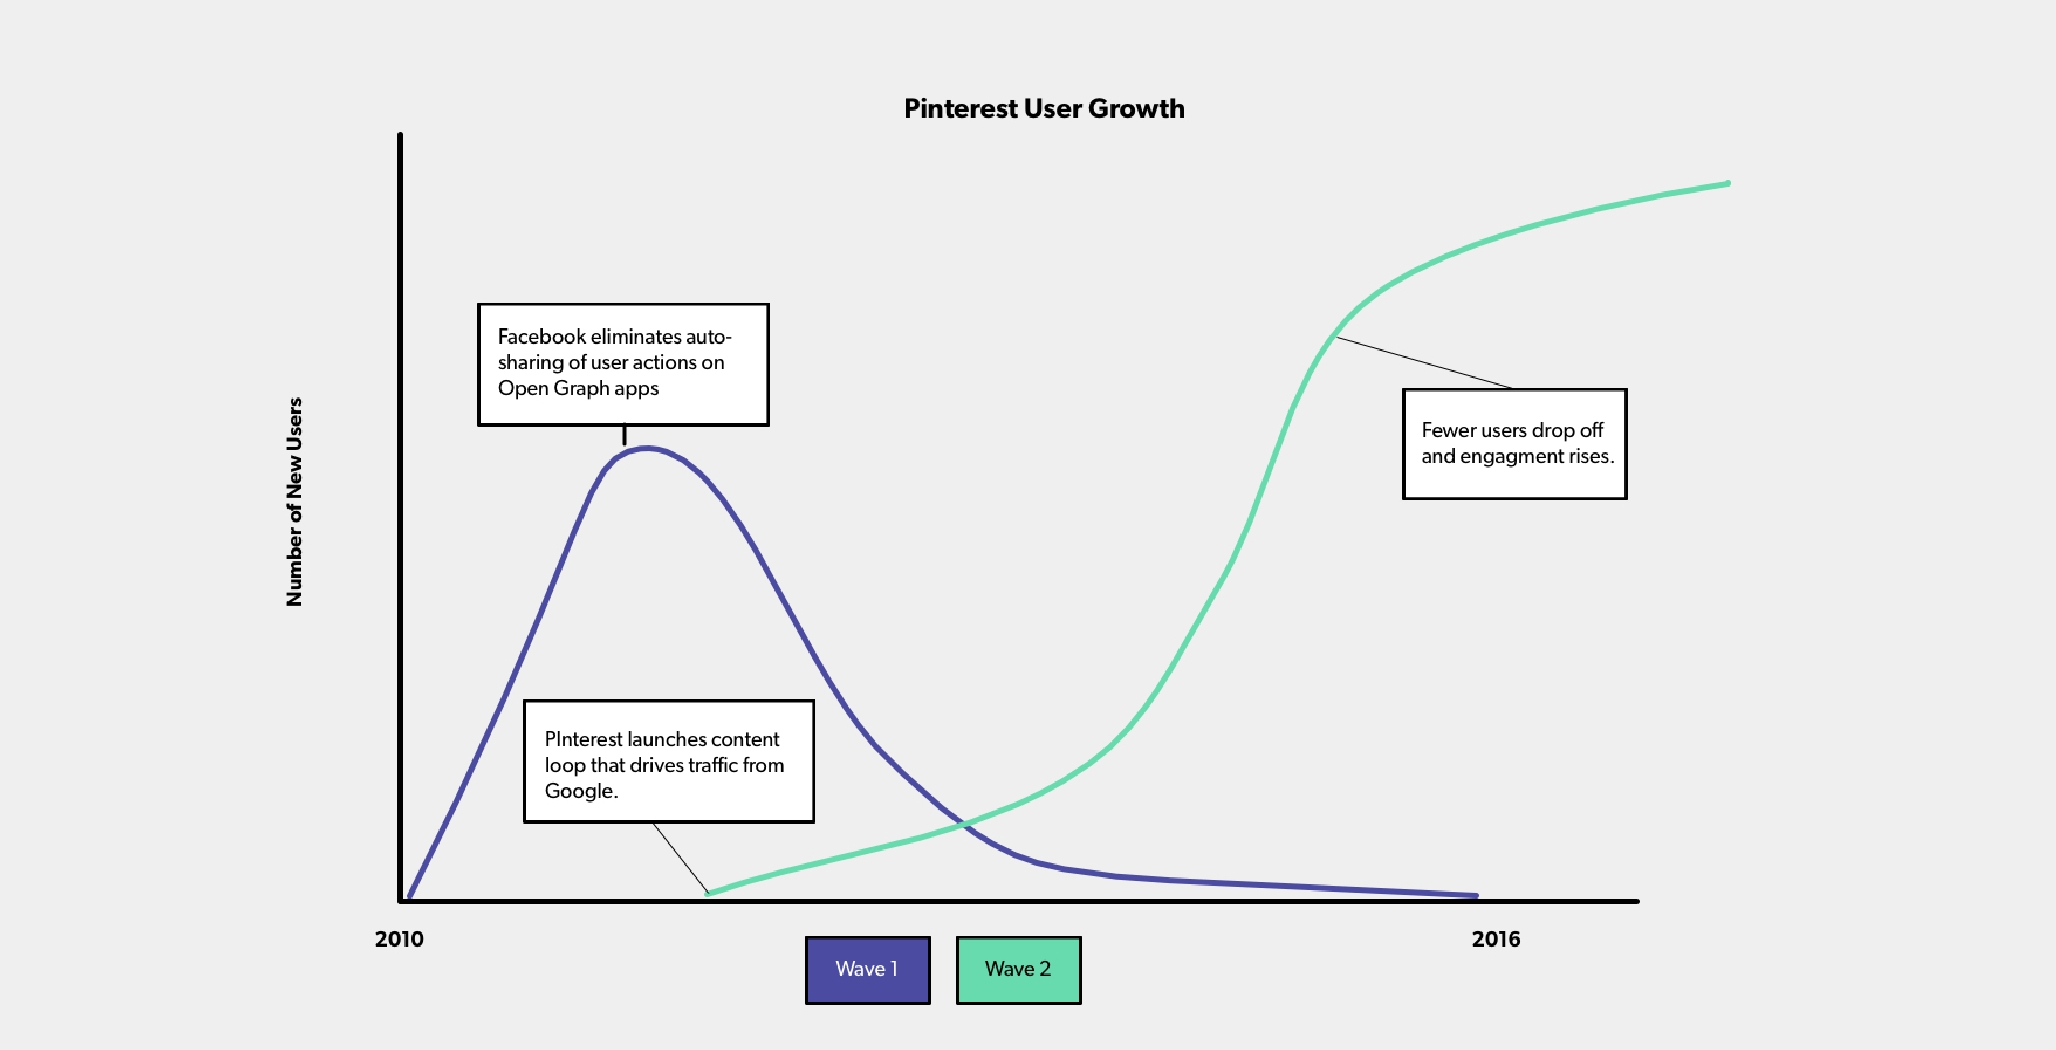 Pinterest User Growth chart